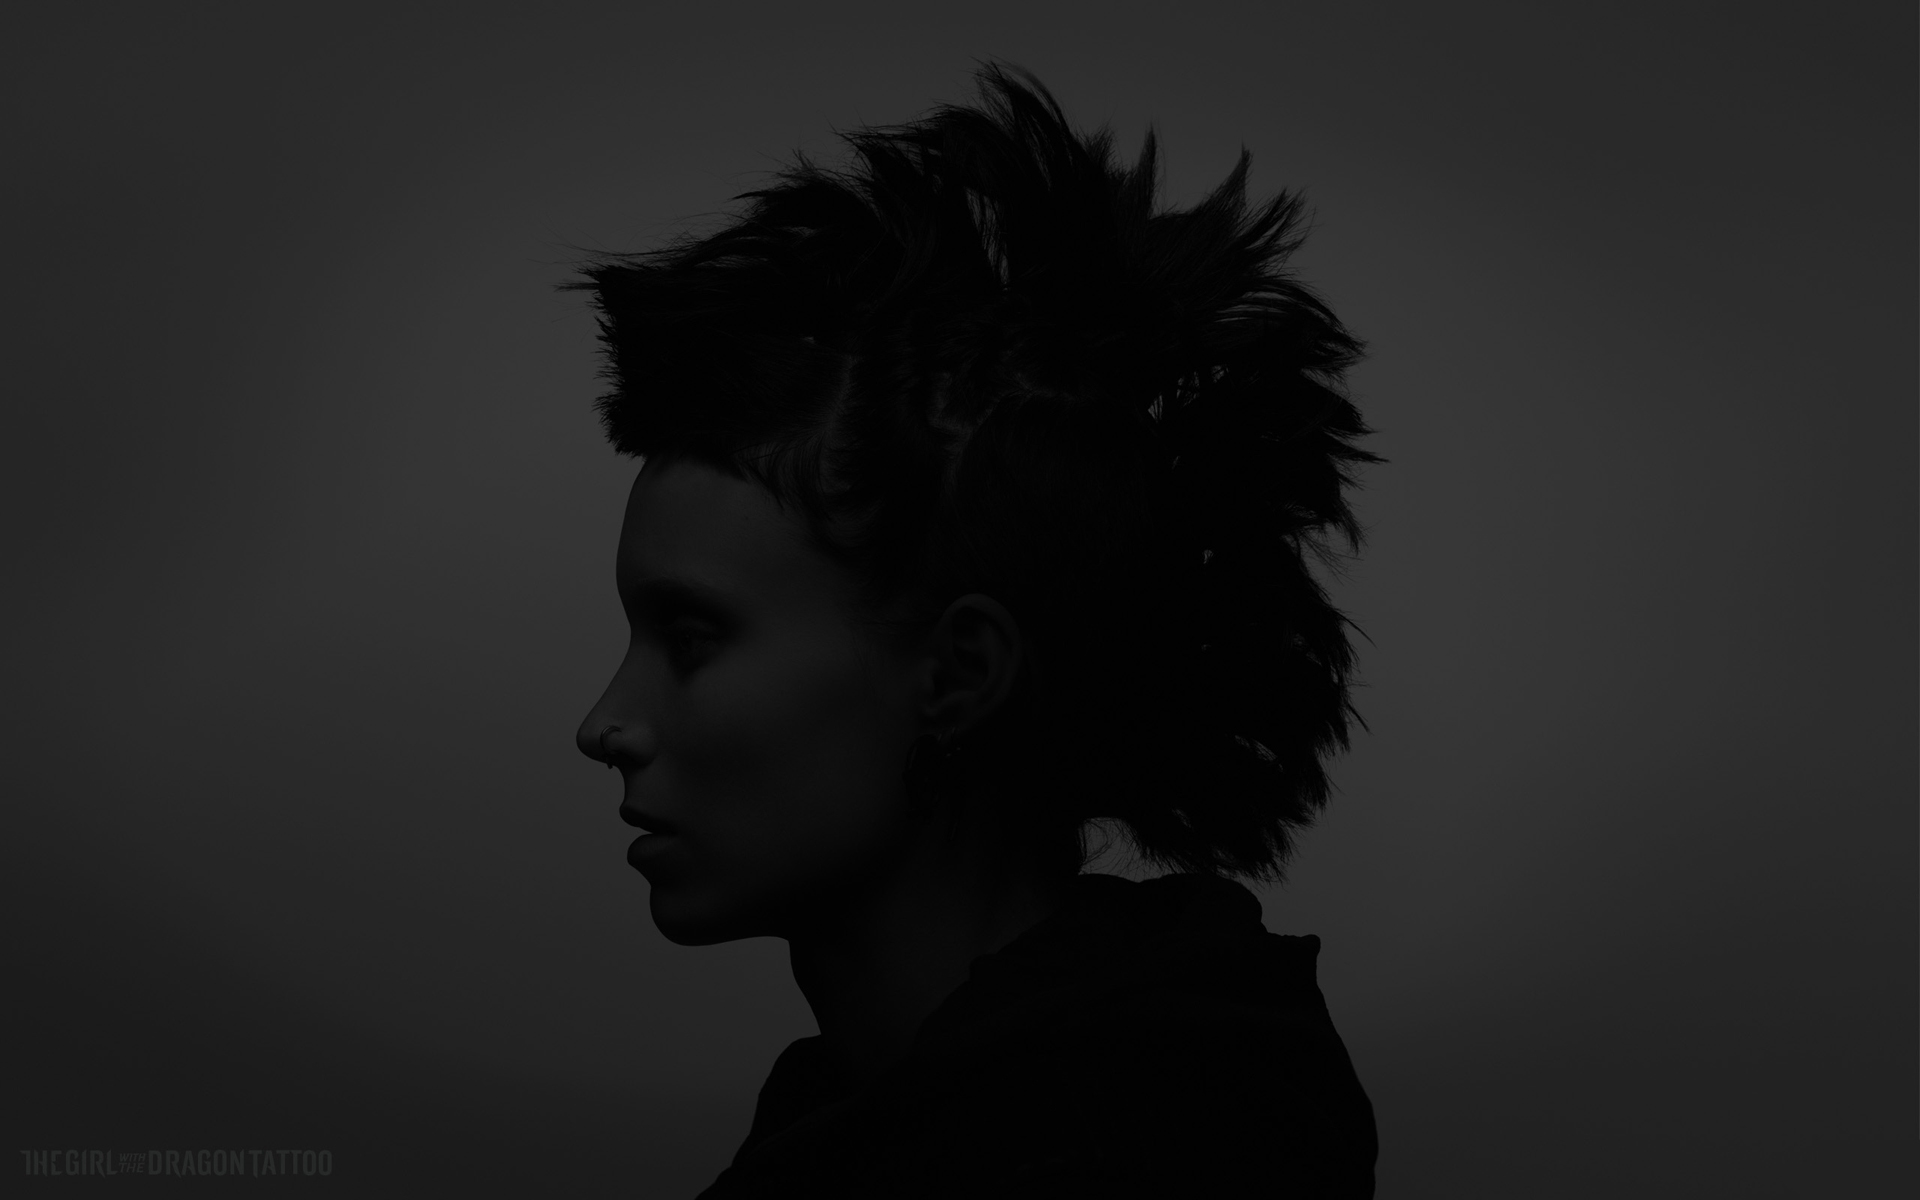 the dragon tattoo bw wallpaper Black and white desktop wallpapers 1920x1200